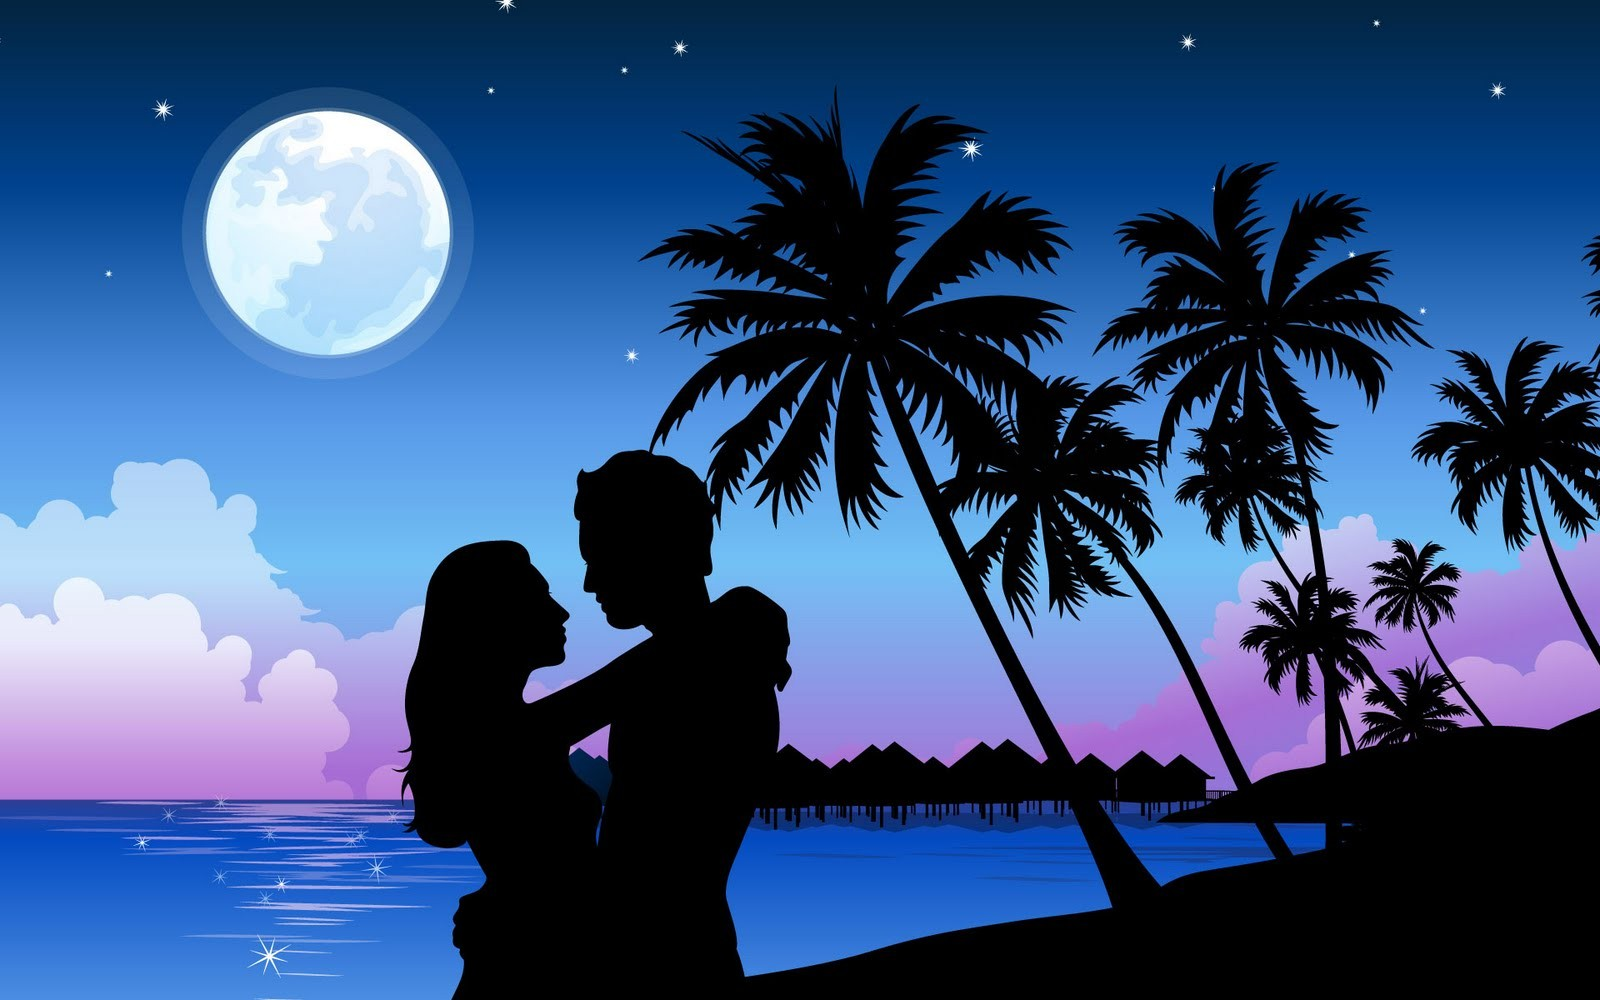 http://1.bp.blogspot.com/-4PfoUCZWBjw/UQzdgx9nPTI/AAAAAAAADIc/Dmd0FfdtJ30/s1600/romantic-couple-wallpapers.jpg